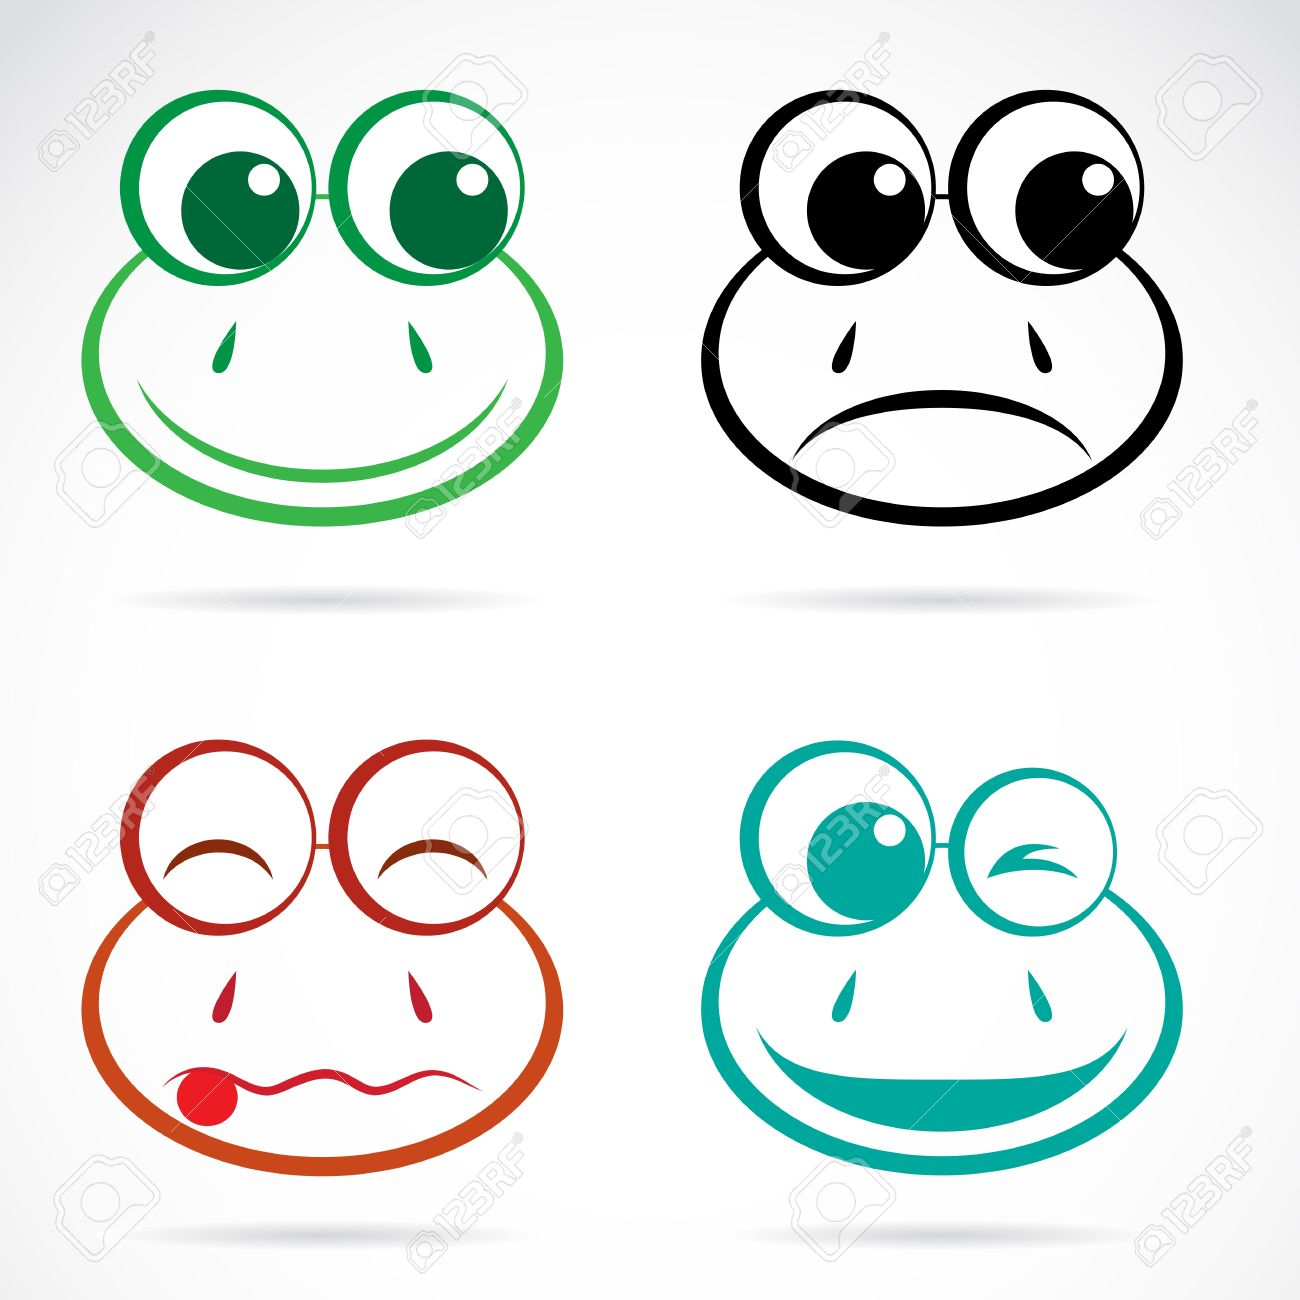 vector image of an frog face on white background royalty free